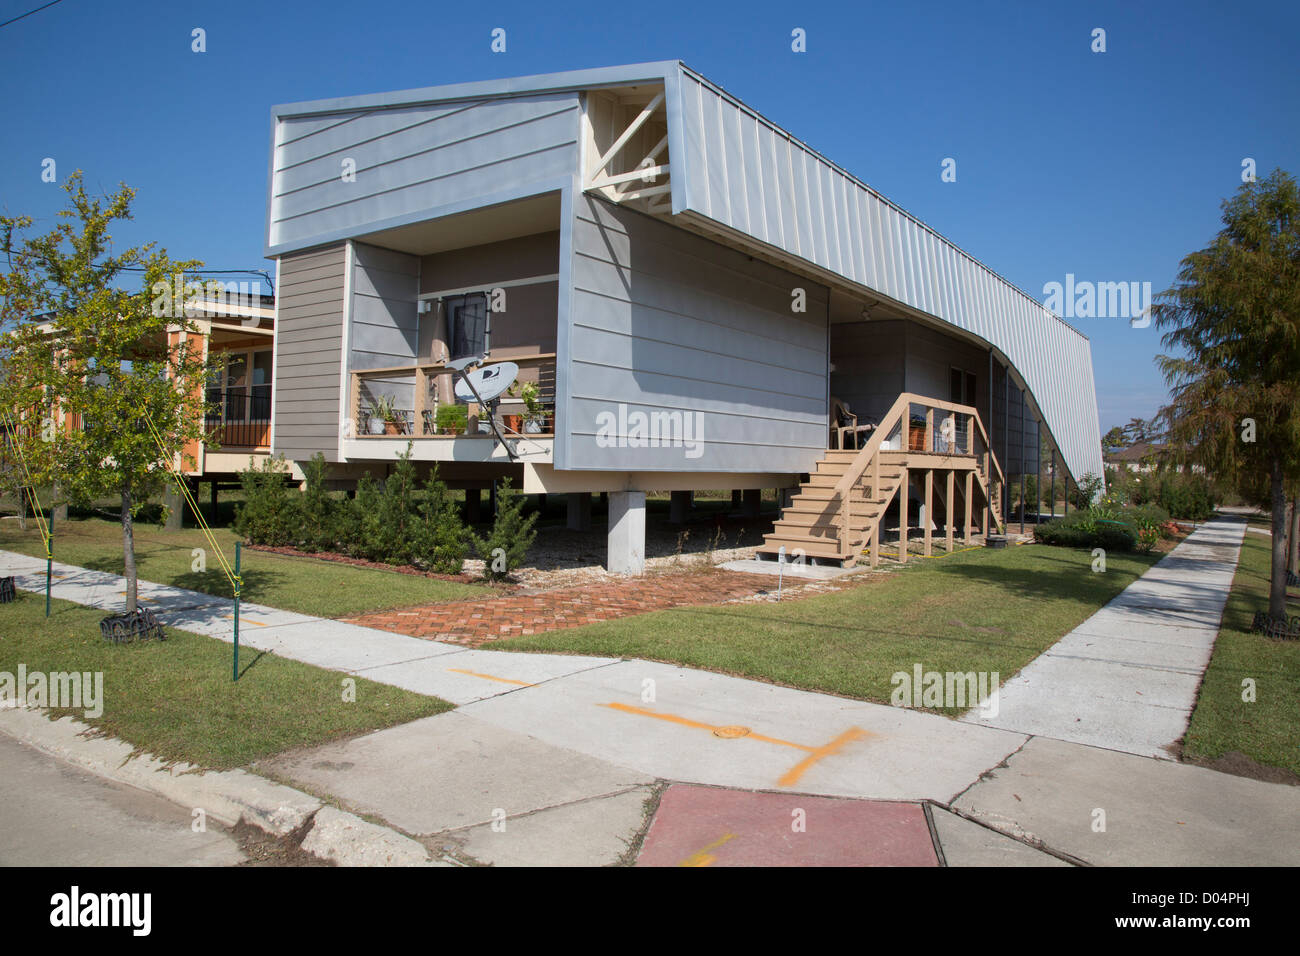 New orleans louisiana new homes in the lower ninth ward for Home builders in louisiana